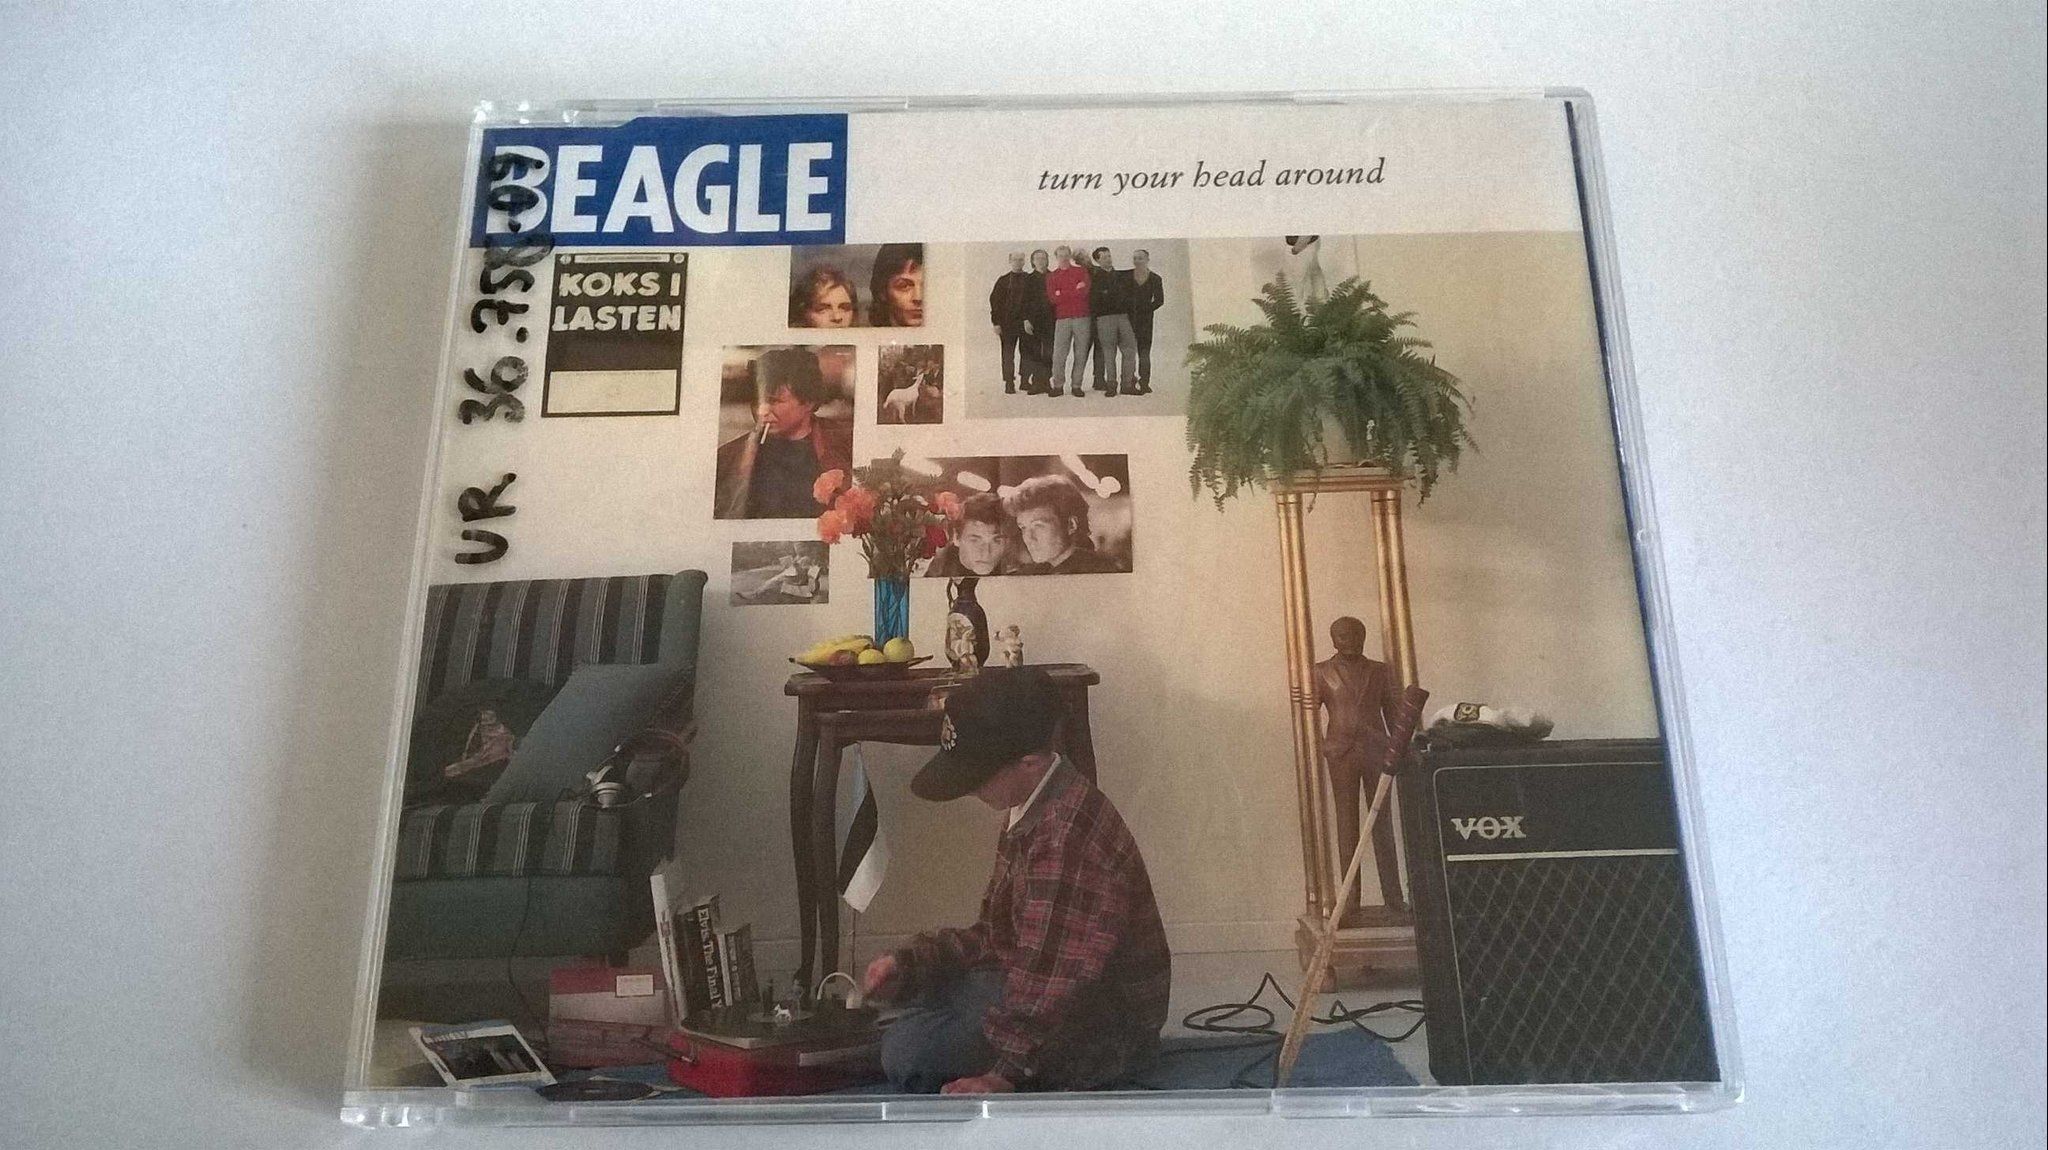 Beagle - Turn Your Head Around, CD